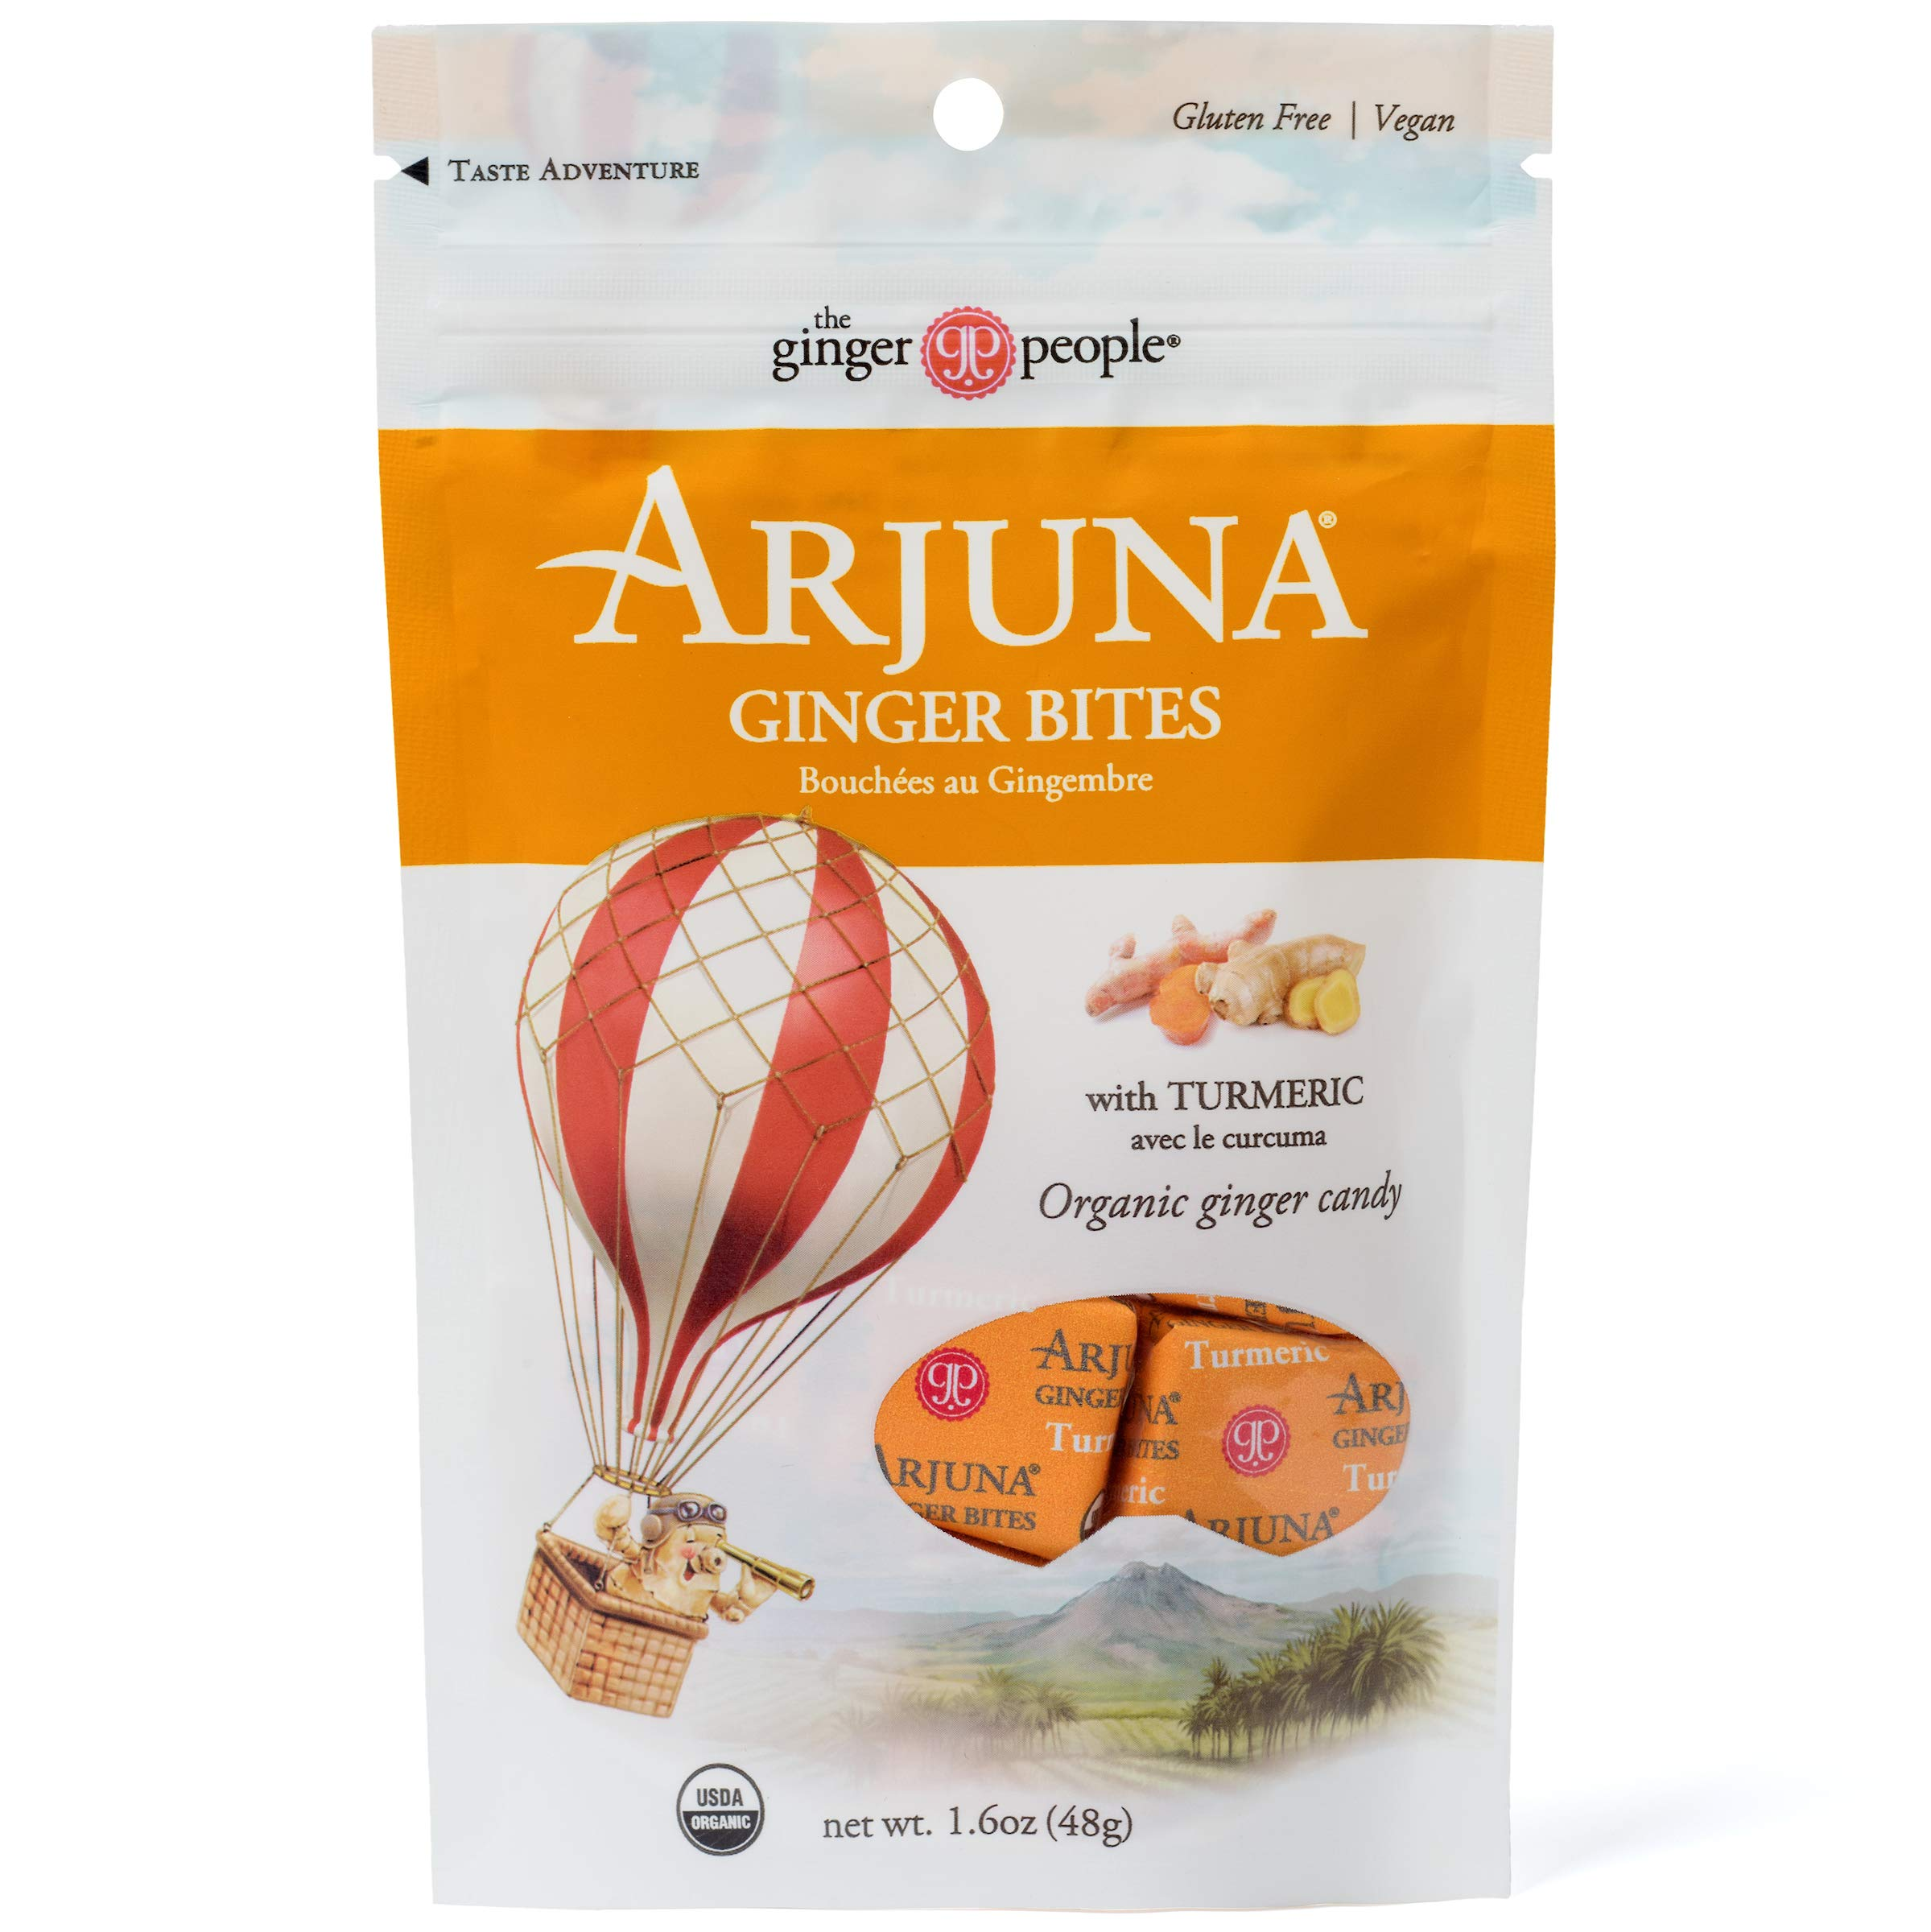 The Ginger People Organic Arjuna Ginger Bites, Turmeric, 1.6 Ounce, Pack of 6 by The Ginger People